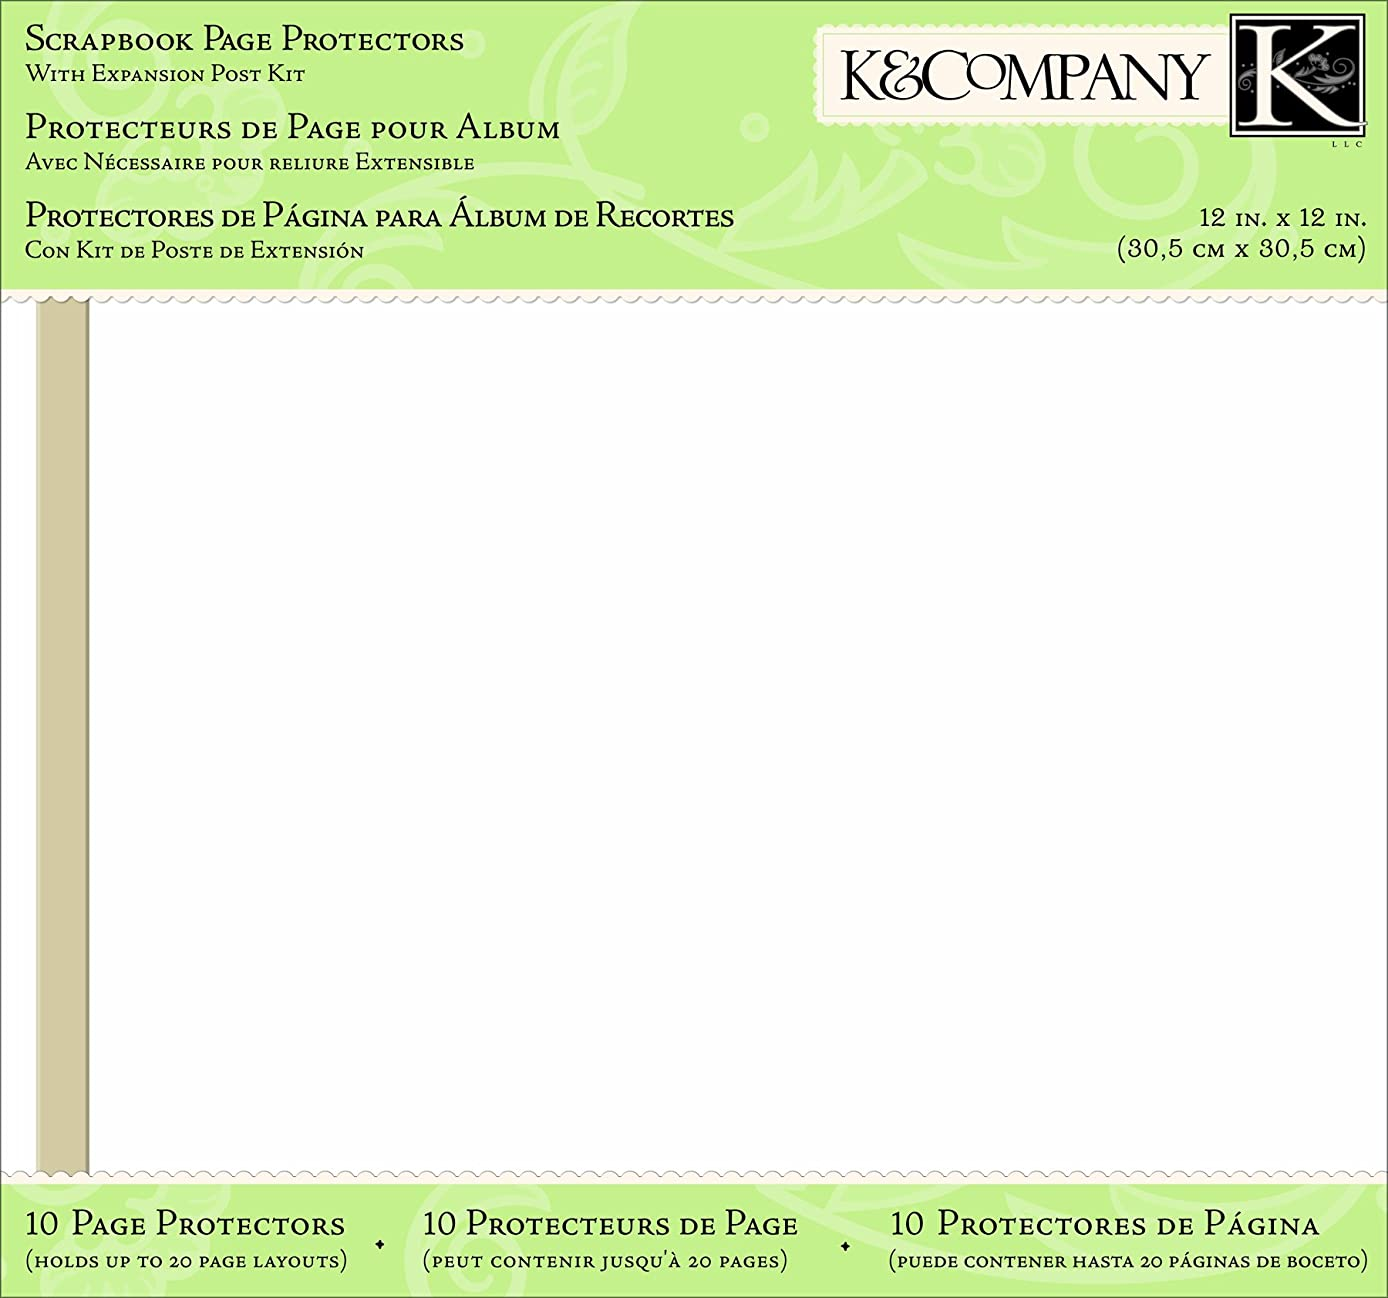 K&Company Sheet Protector Refills, 12-by-12-Inch, 10-Pages with Inserts